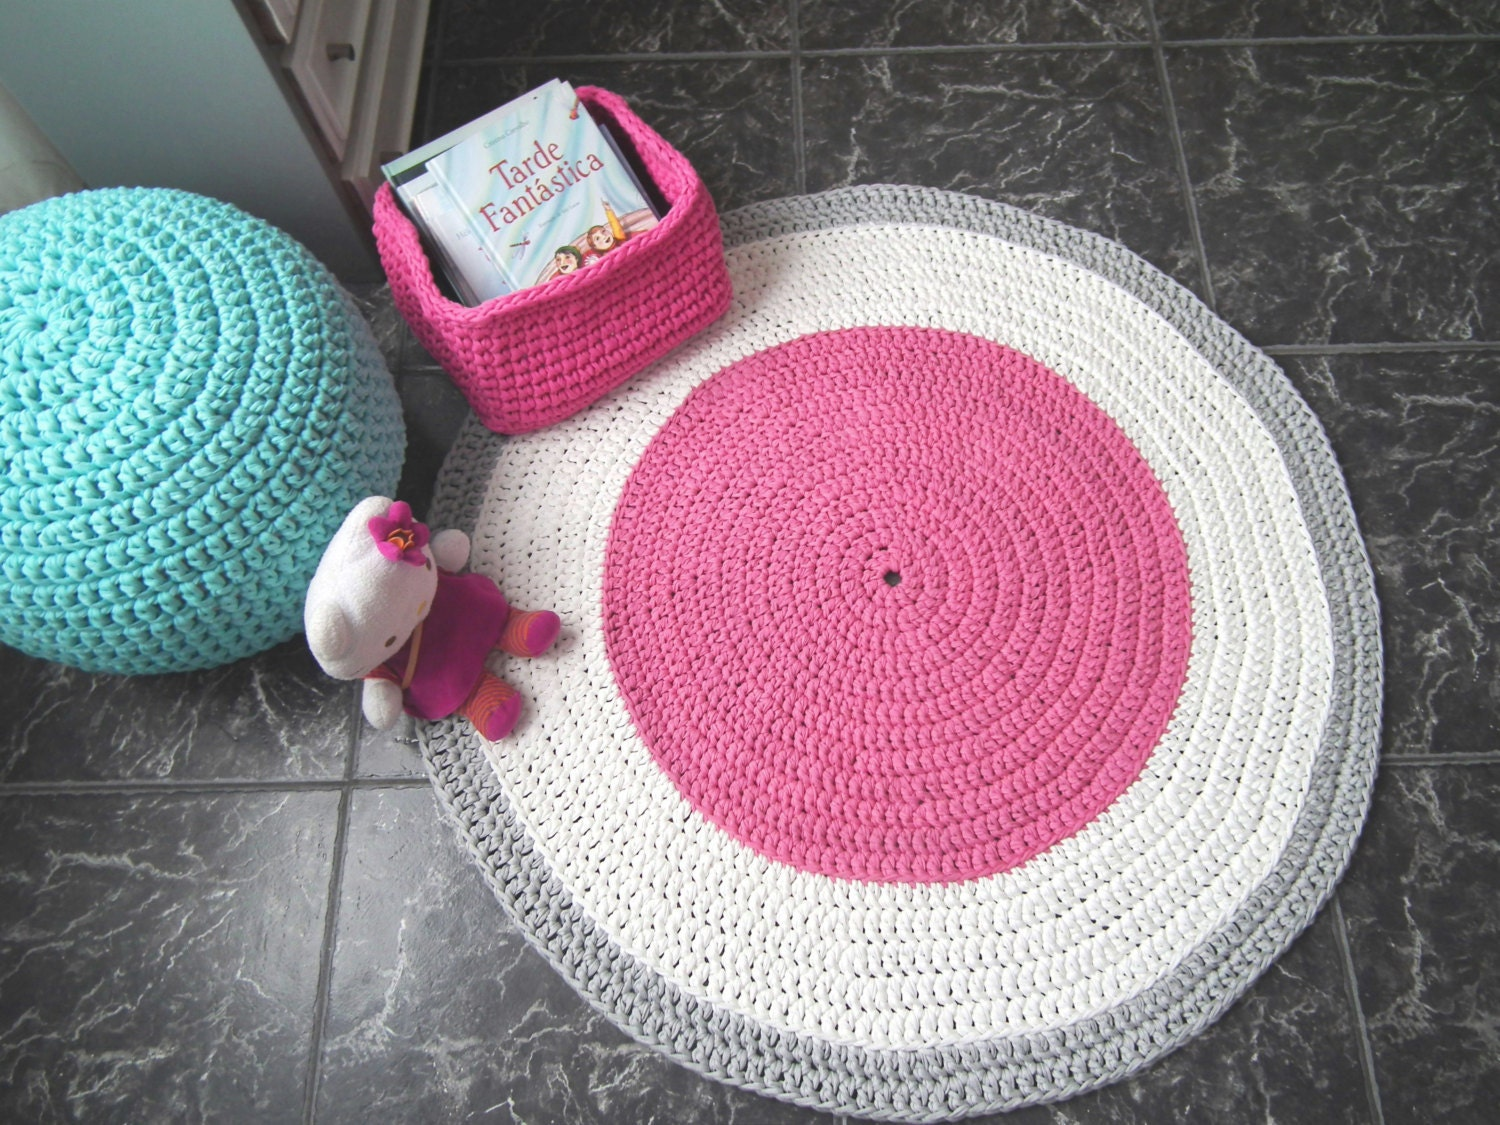 Crocheting Round Rugs : Large Pink Crochet Round Rug Pink Cotton Rag Rug by LoopingHome